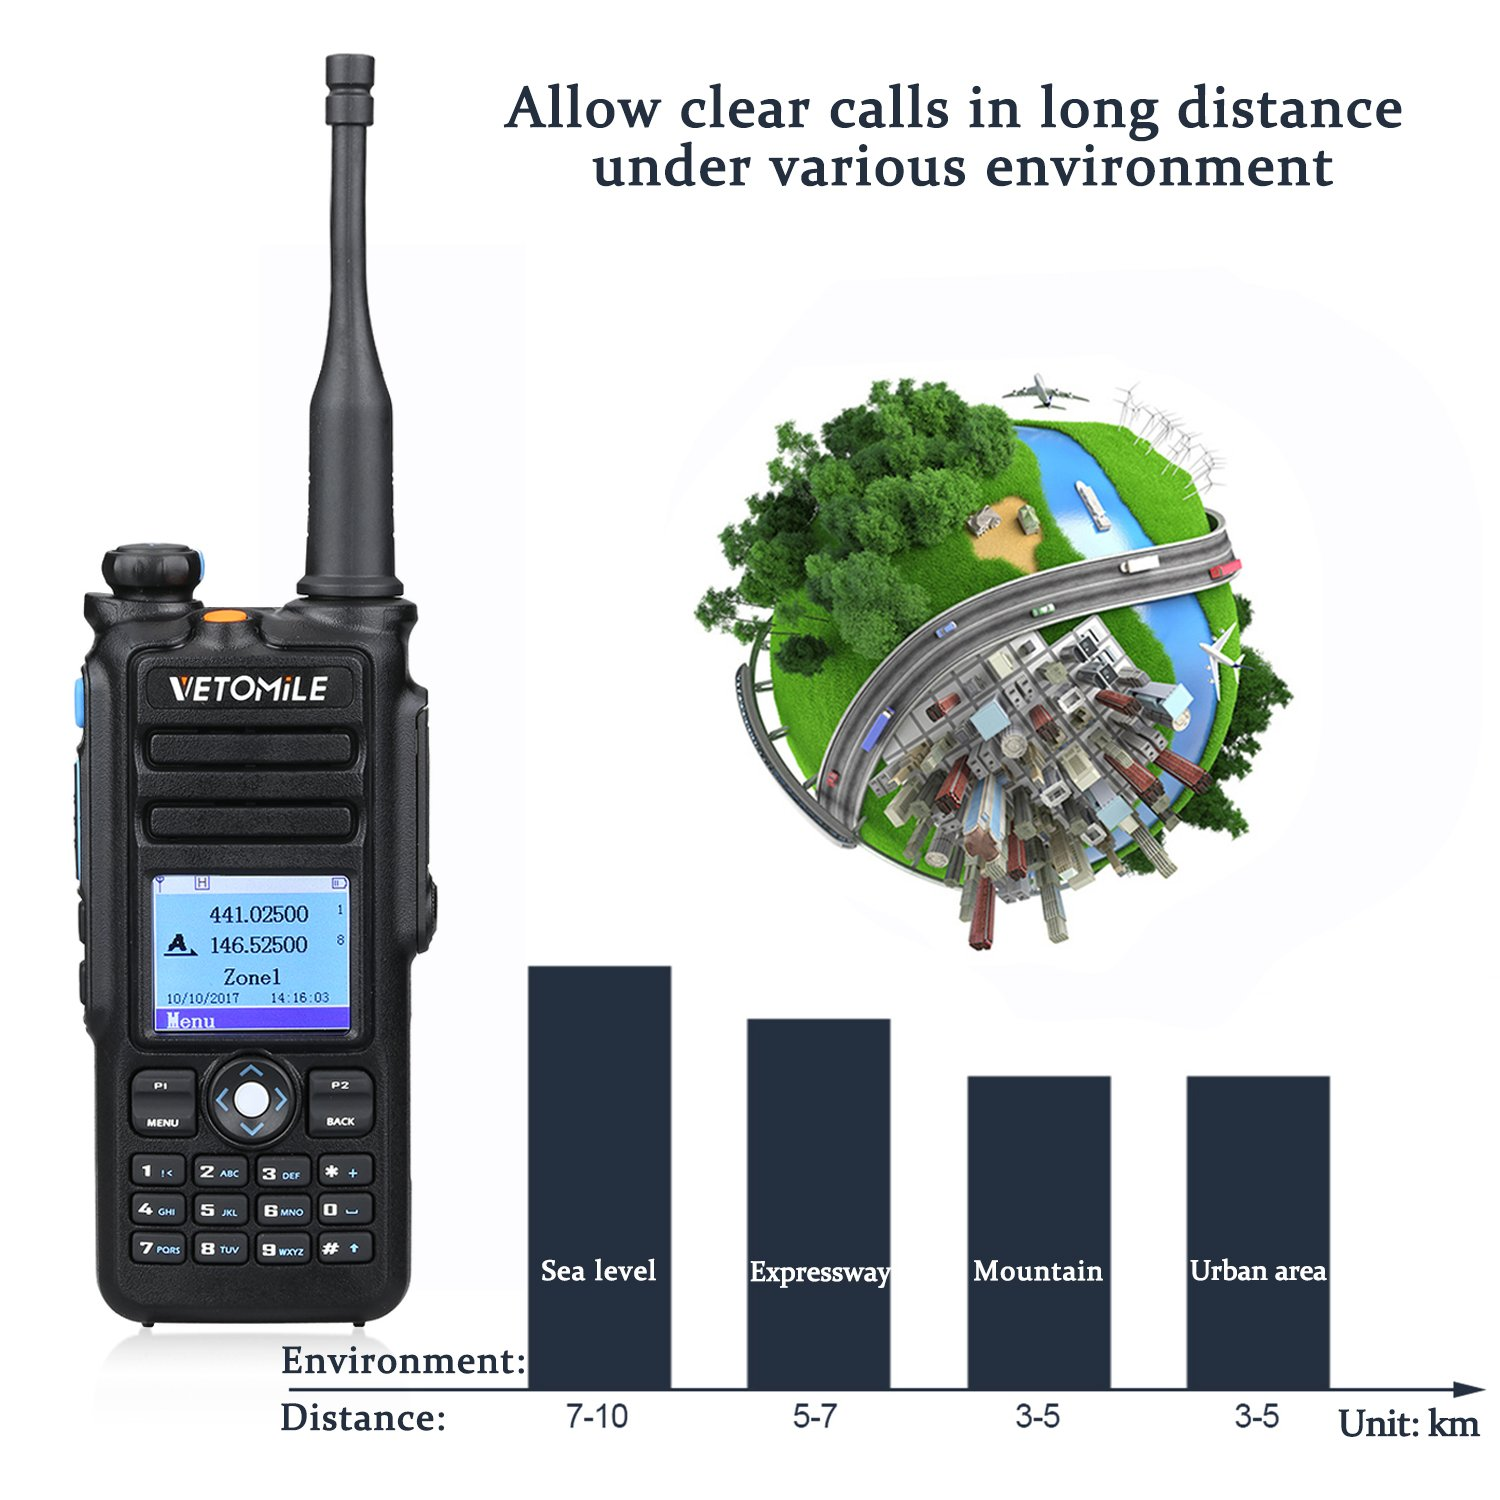 VETOMILE V-2017 Dual Band DMR Digital/Analog Two Way Radio 5W VHF 136-174MHZ & UHF 400-480MHz Walkie Talkie 3000 Channels IP67 Waterproof with GPS Function and Programming Cable by VETOMILE (Image #2)